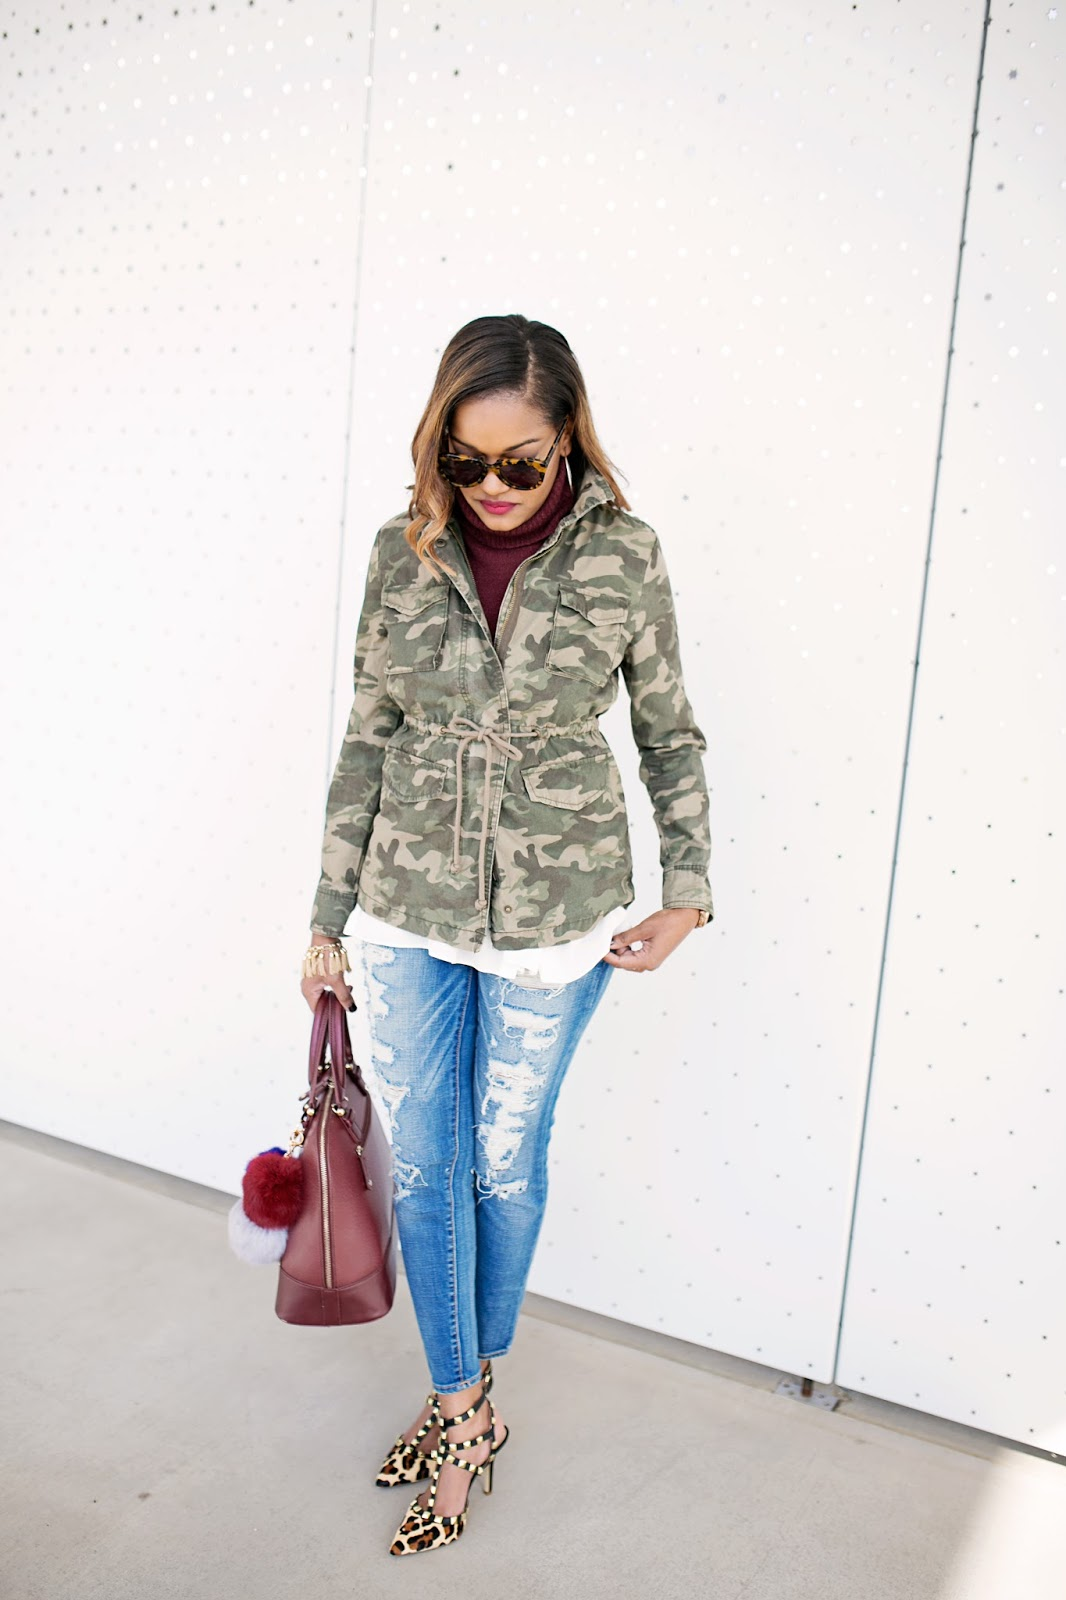 OLD NAVY CAMO JACKET- SLEEVELESS CROPPED TURTLENECK FOREVER 21- RIPPED ANKLE JEANS AMERICAN EAGLE-FAUX FUR POM POM- LEOPARD HEELS- BCBGENERATION LEOPARD PUMPS- VALENTINO LOOK FOR LESS PUMPS- HOW TO PRINT MIX LEOPARD- KAREN WALKER NUMBER ONE SUNGLASSES- FASHION BLOGGER- BROWN GIRL BLOGGER- BLACK BLOGGER- DALLAS BLOGGER